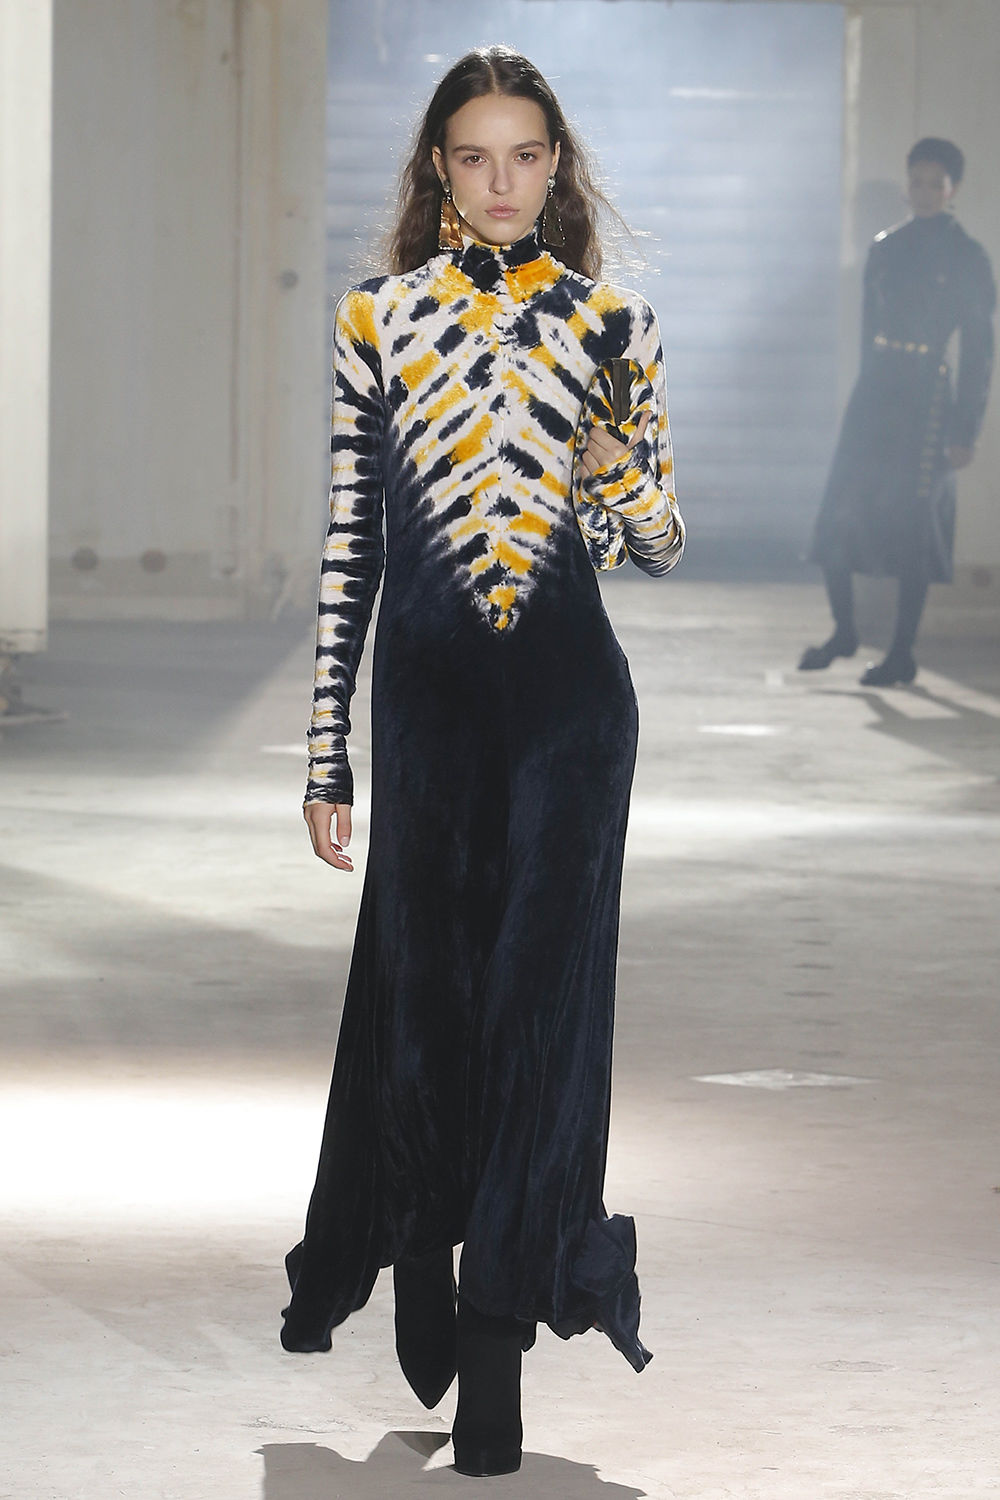 proenza schouler fall 2018 runway look 7